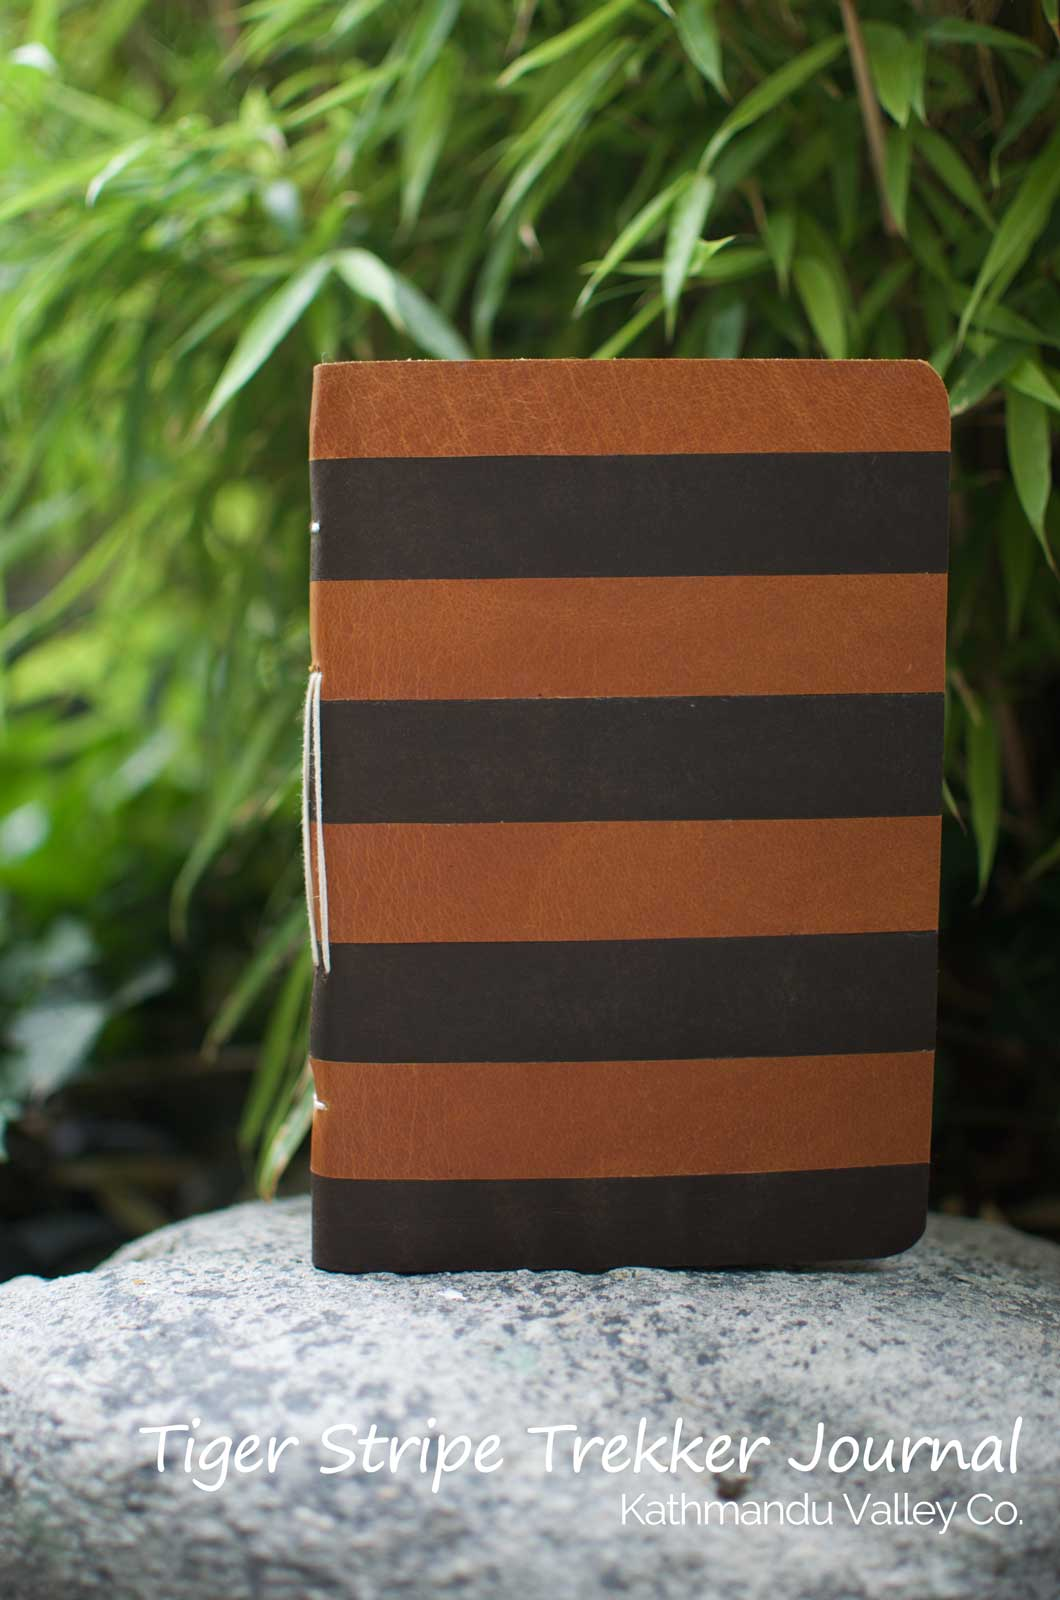 Introducing the Nepali Trekker Tiger Stripe Journal